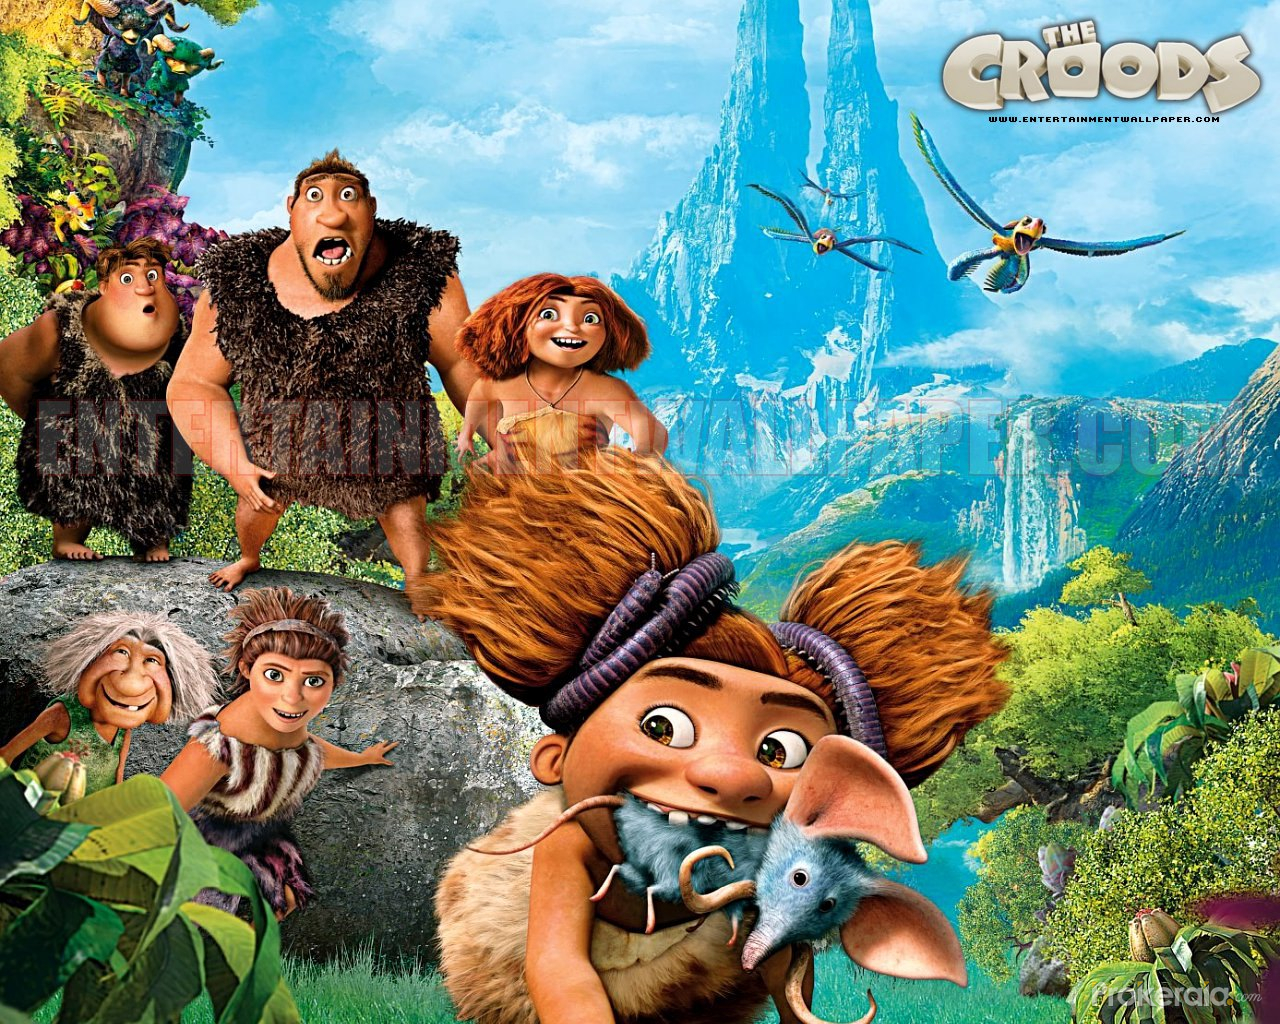 the croods wallpapers and posters still # 8